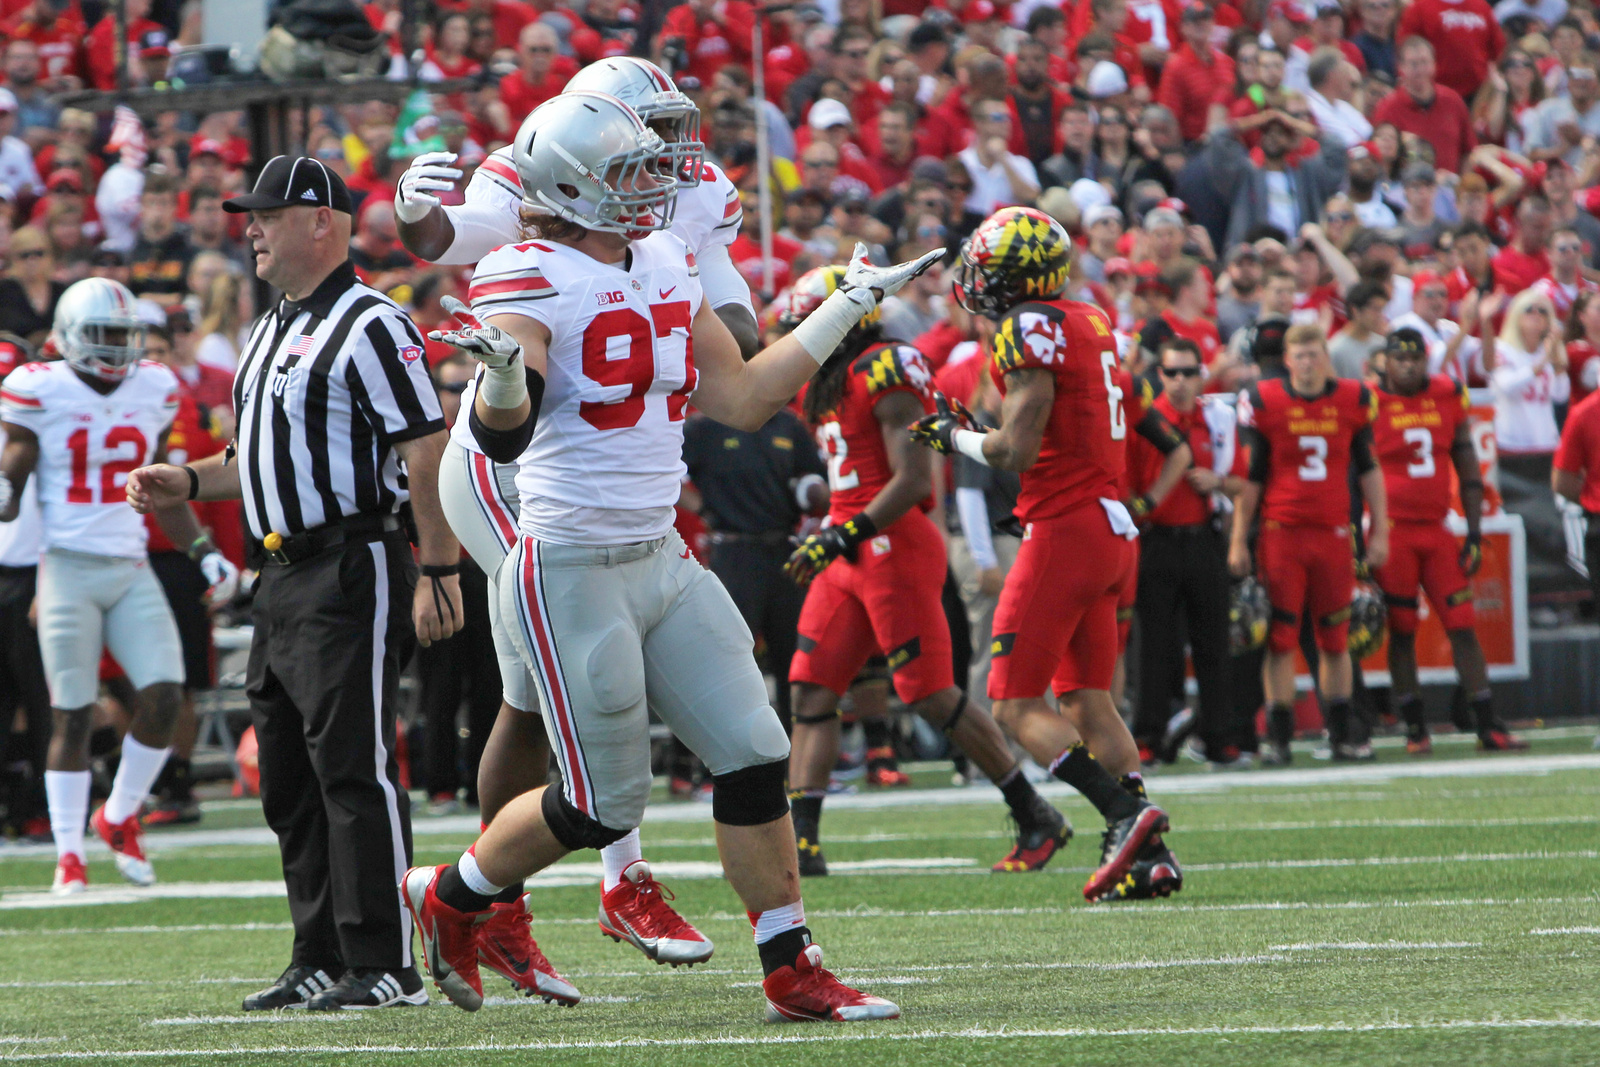 Opposition Takes Notice Of Joey Bosa's Play For Ohio State